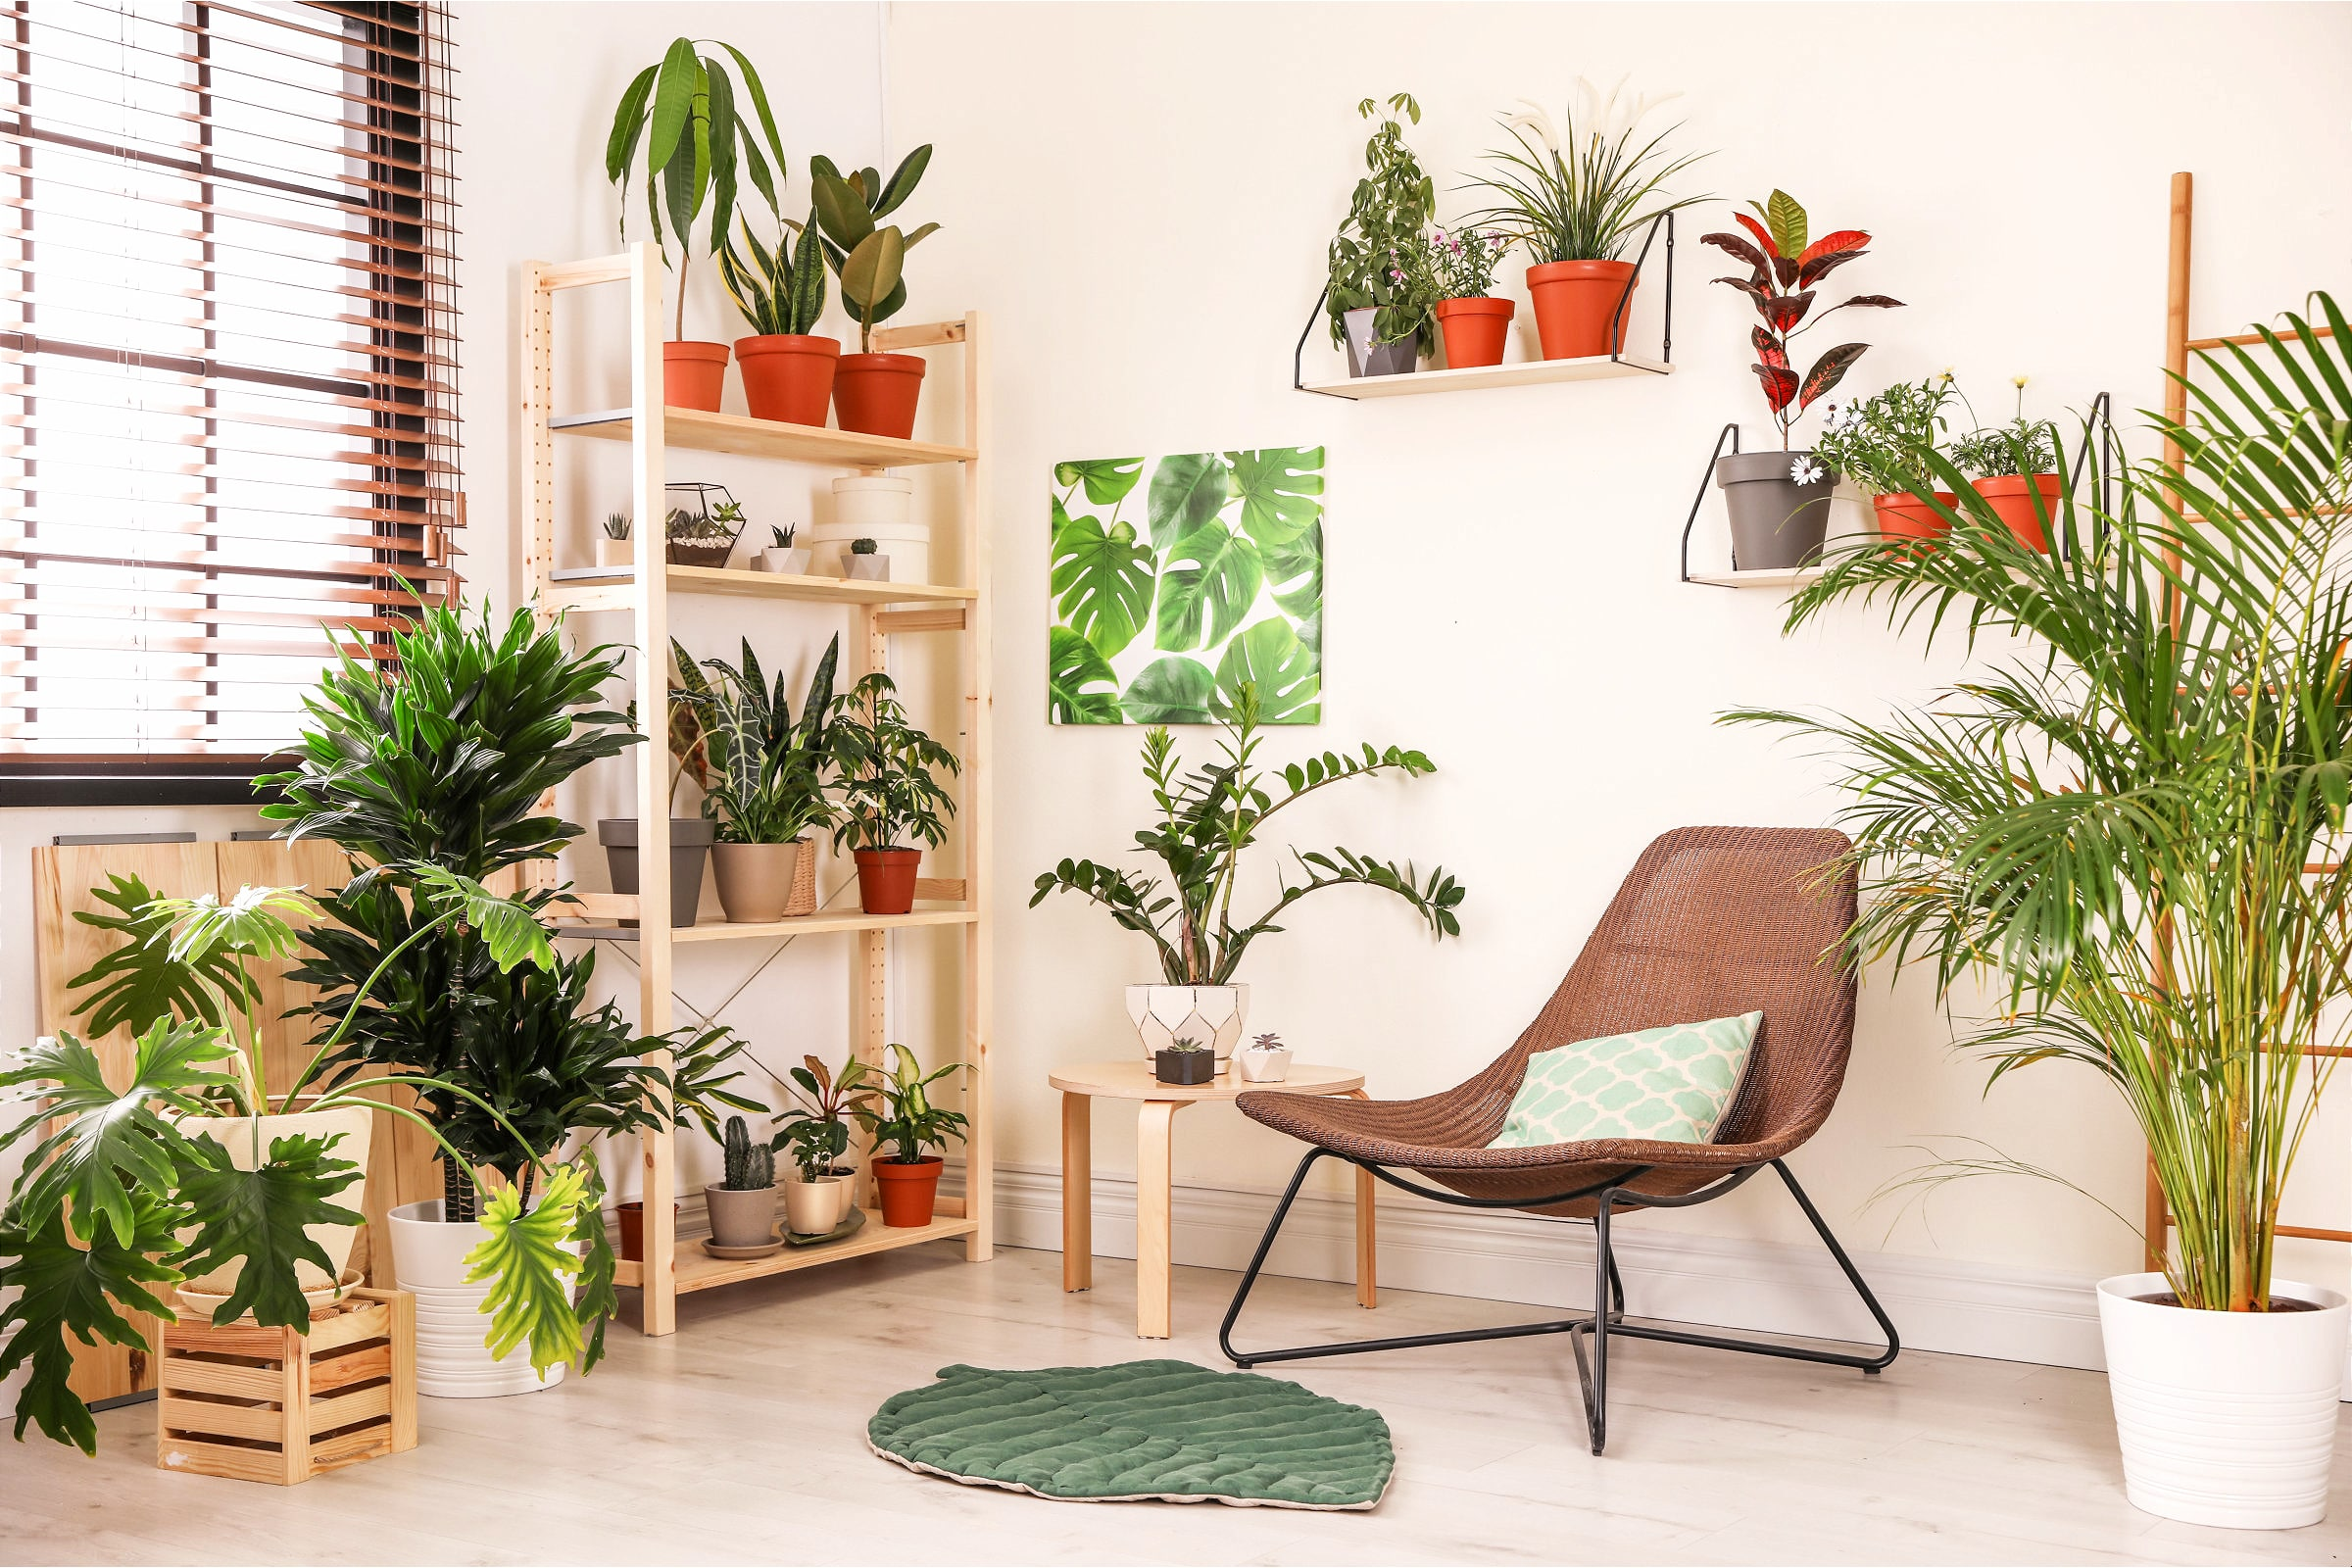 A Living Room With Plants